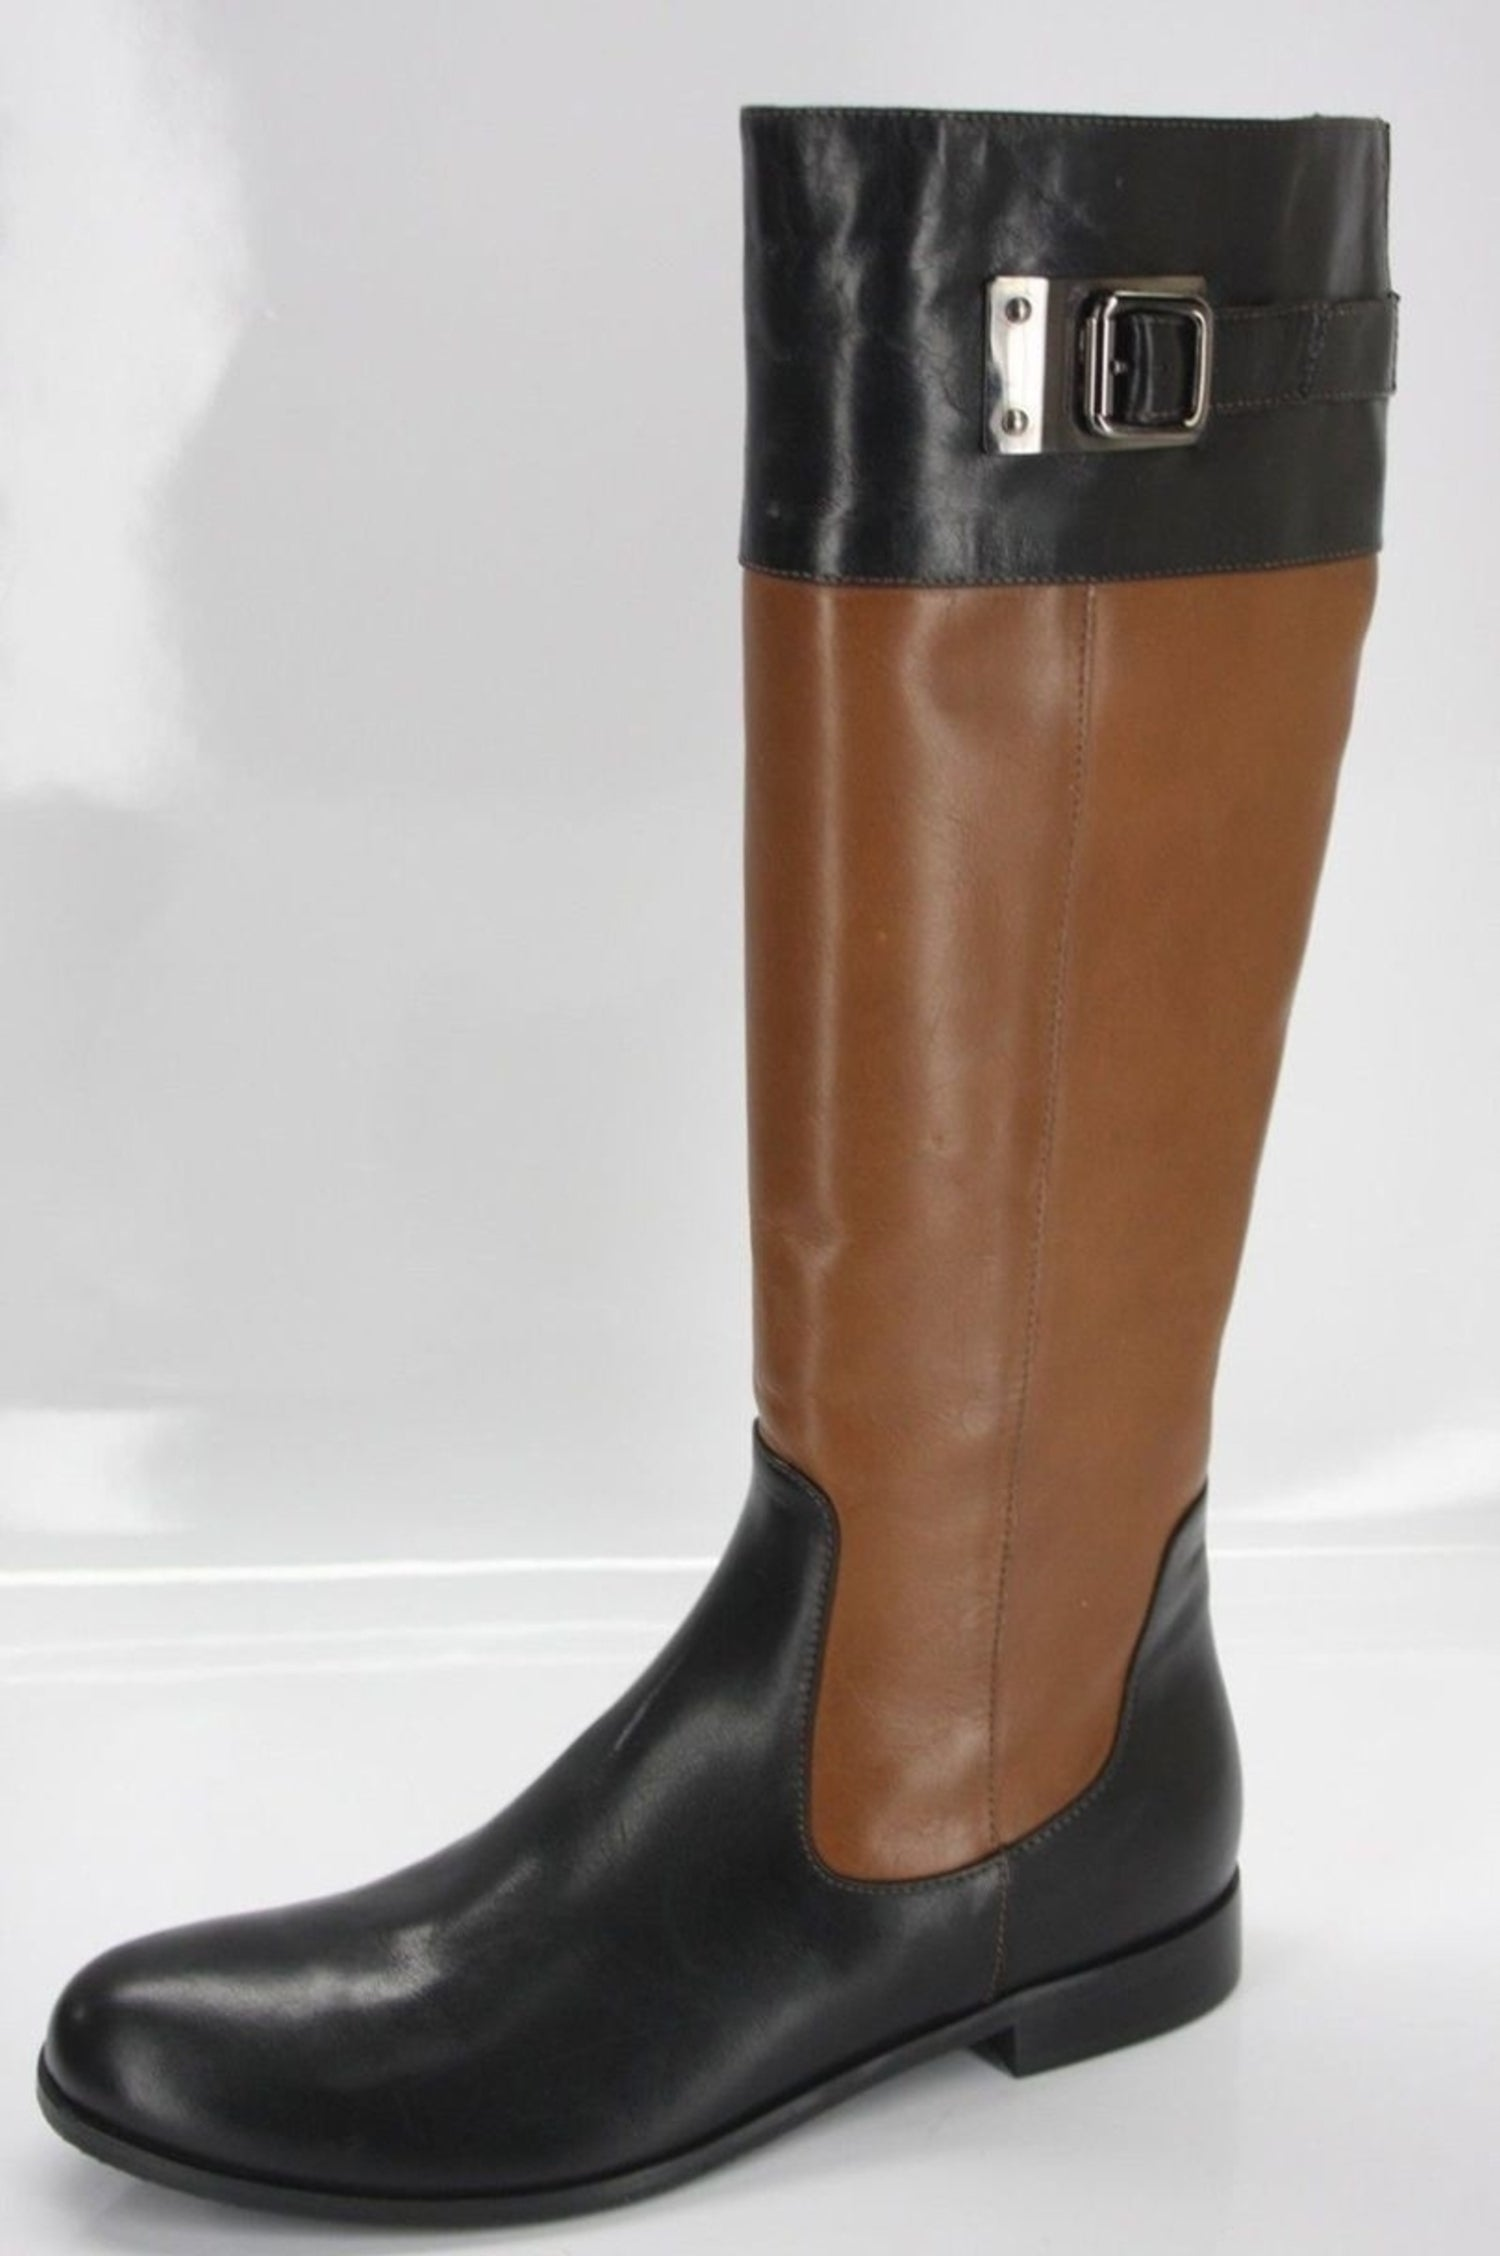 Aquatalia Brown Black Leather Drew Riding Boots SZ 8 NEW $550 Buckle Knee high